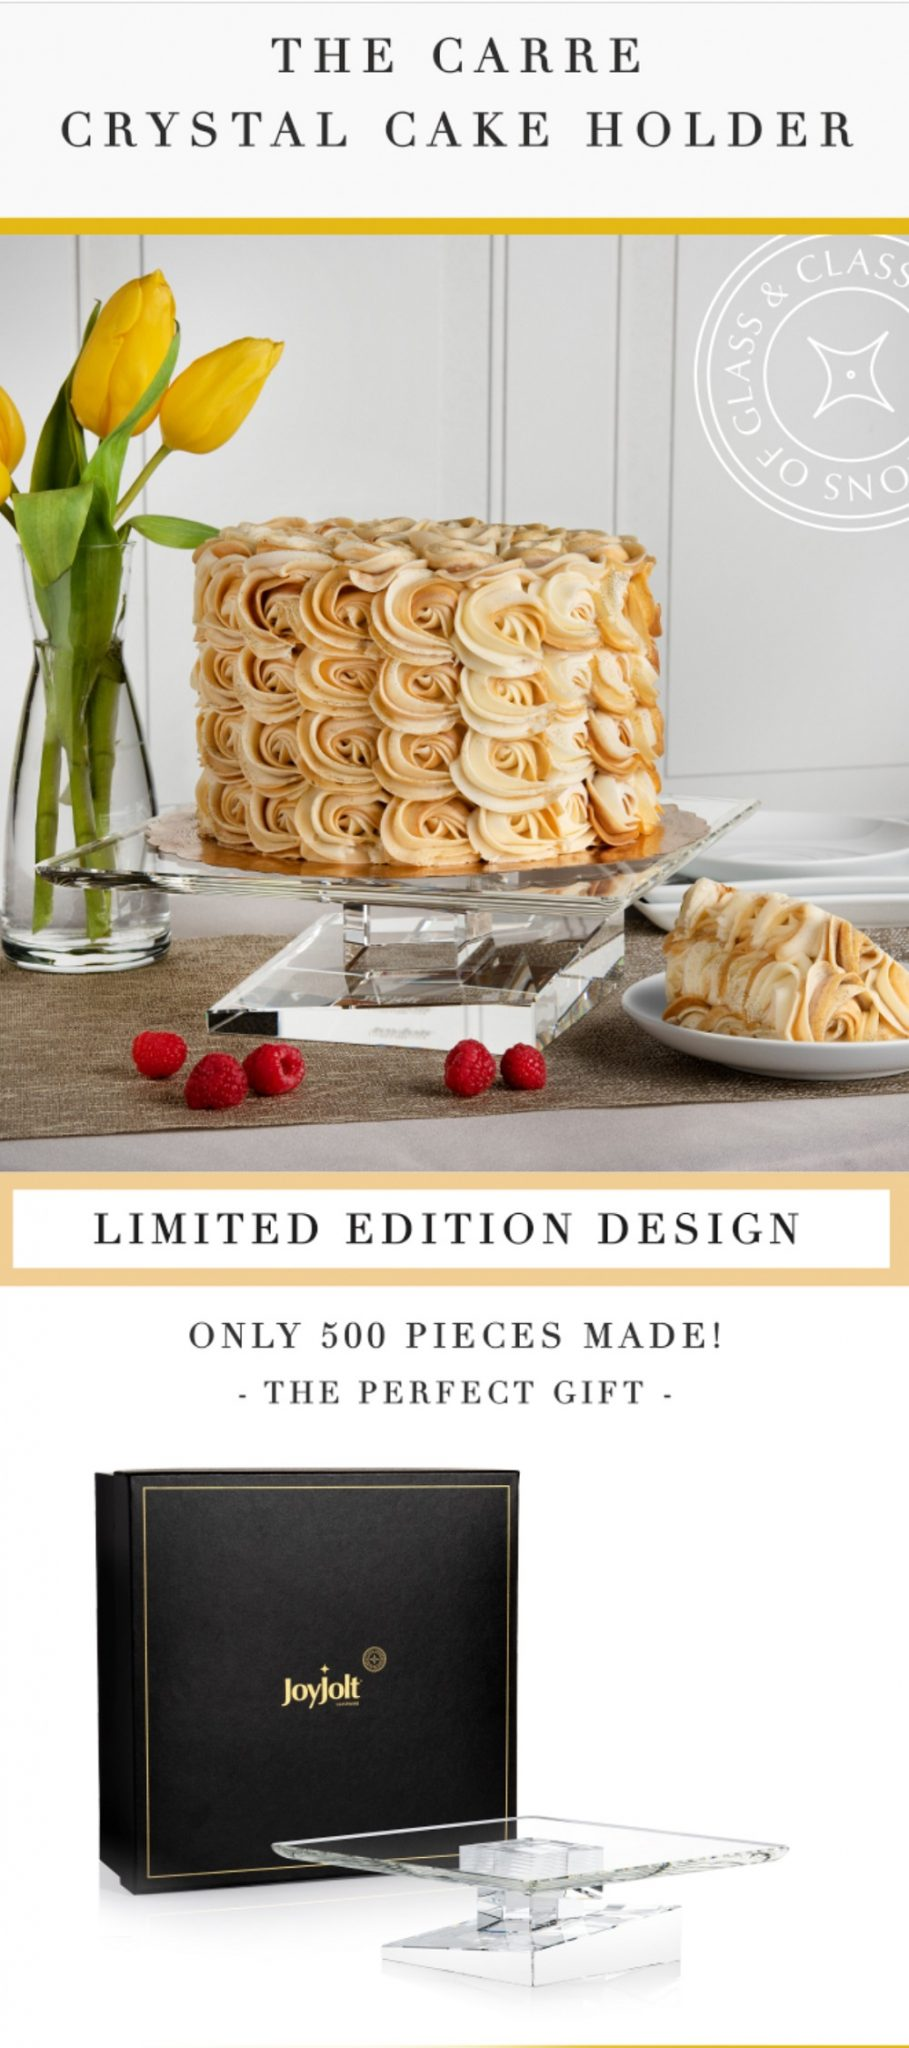 #Win Carre Crystal Cake Holder (APV $350) US only, ends 6/1